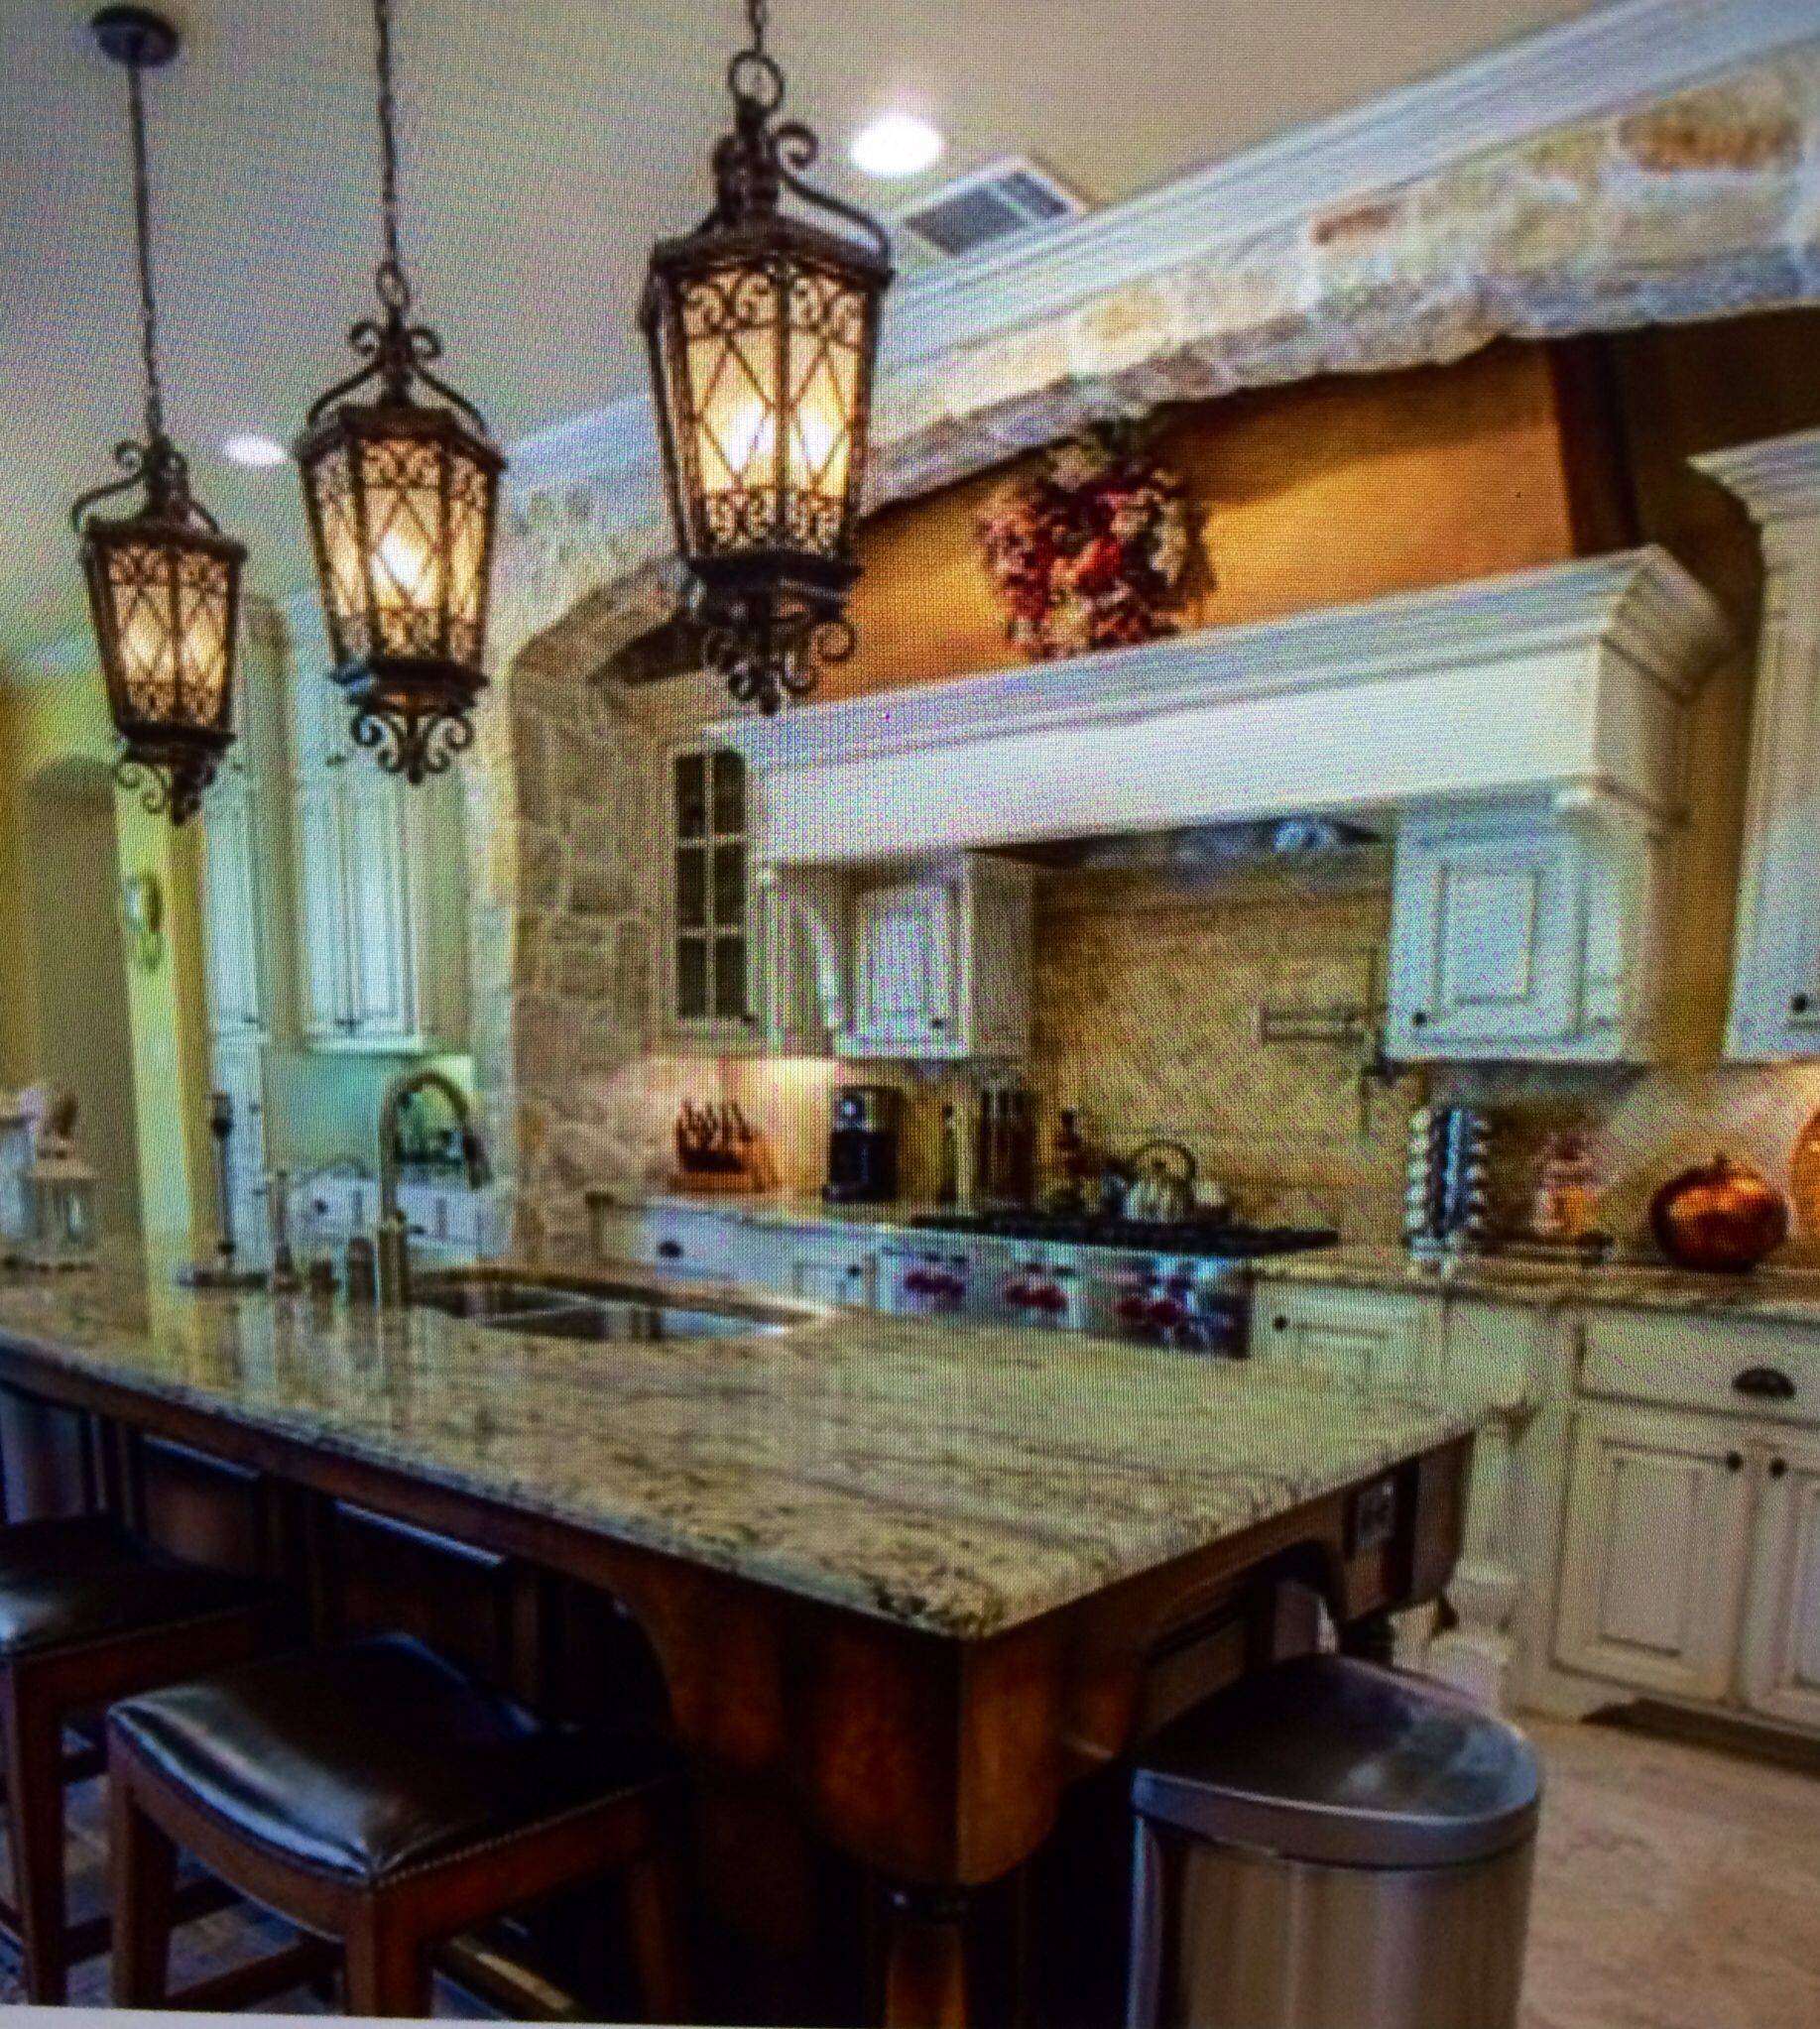 Kitchen Lanterns And Sunken In Counters Casa De Polk Awesome Kitchen Lanterns Review